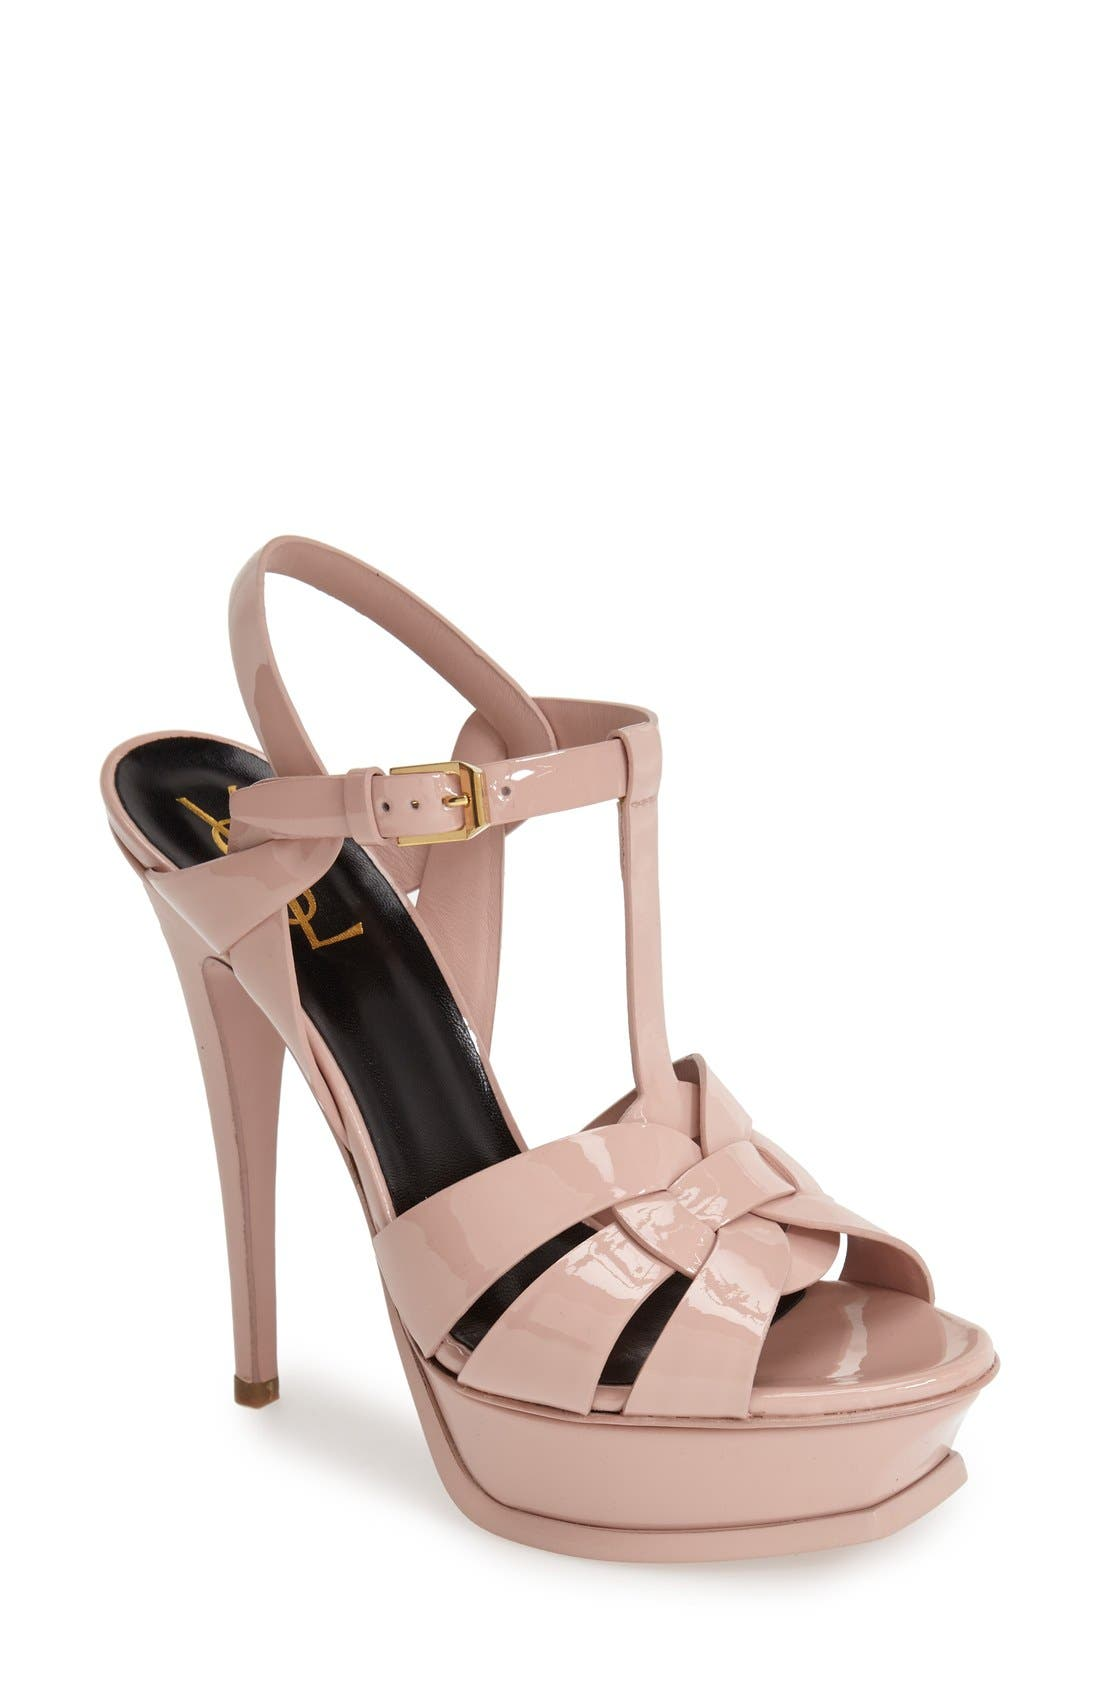 Saint Laurent Tribute TStrap Platform Sandal Women